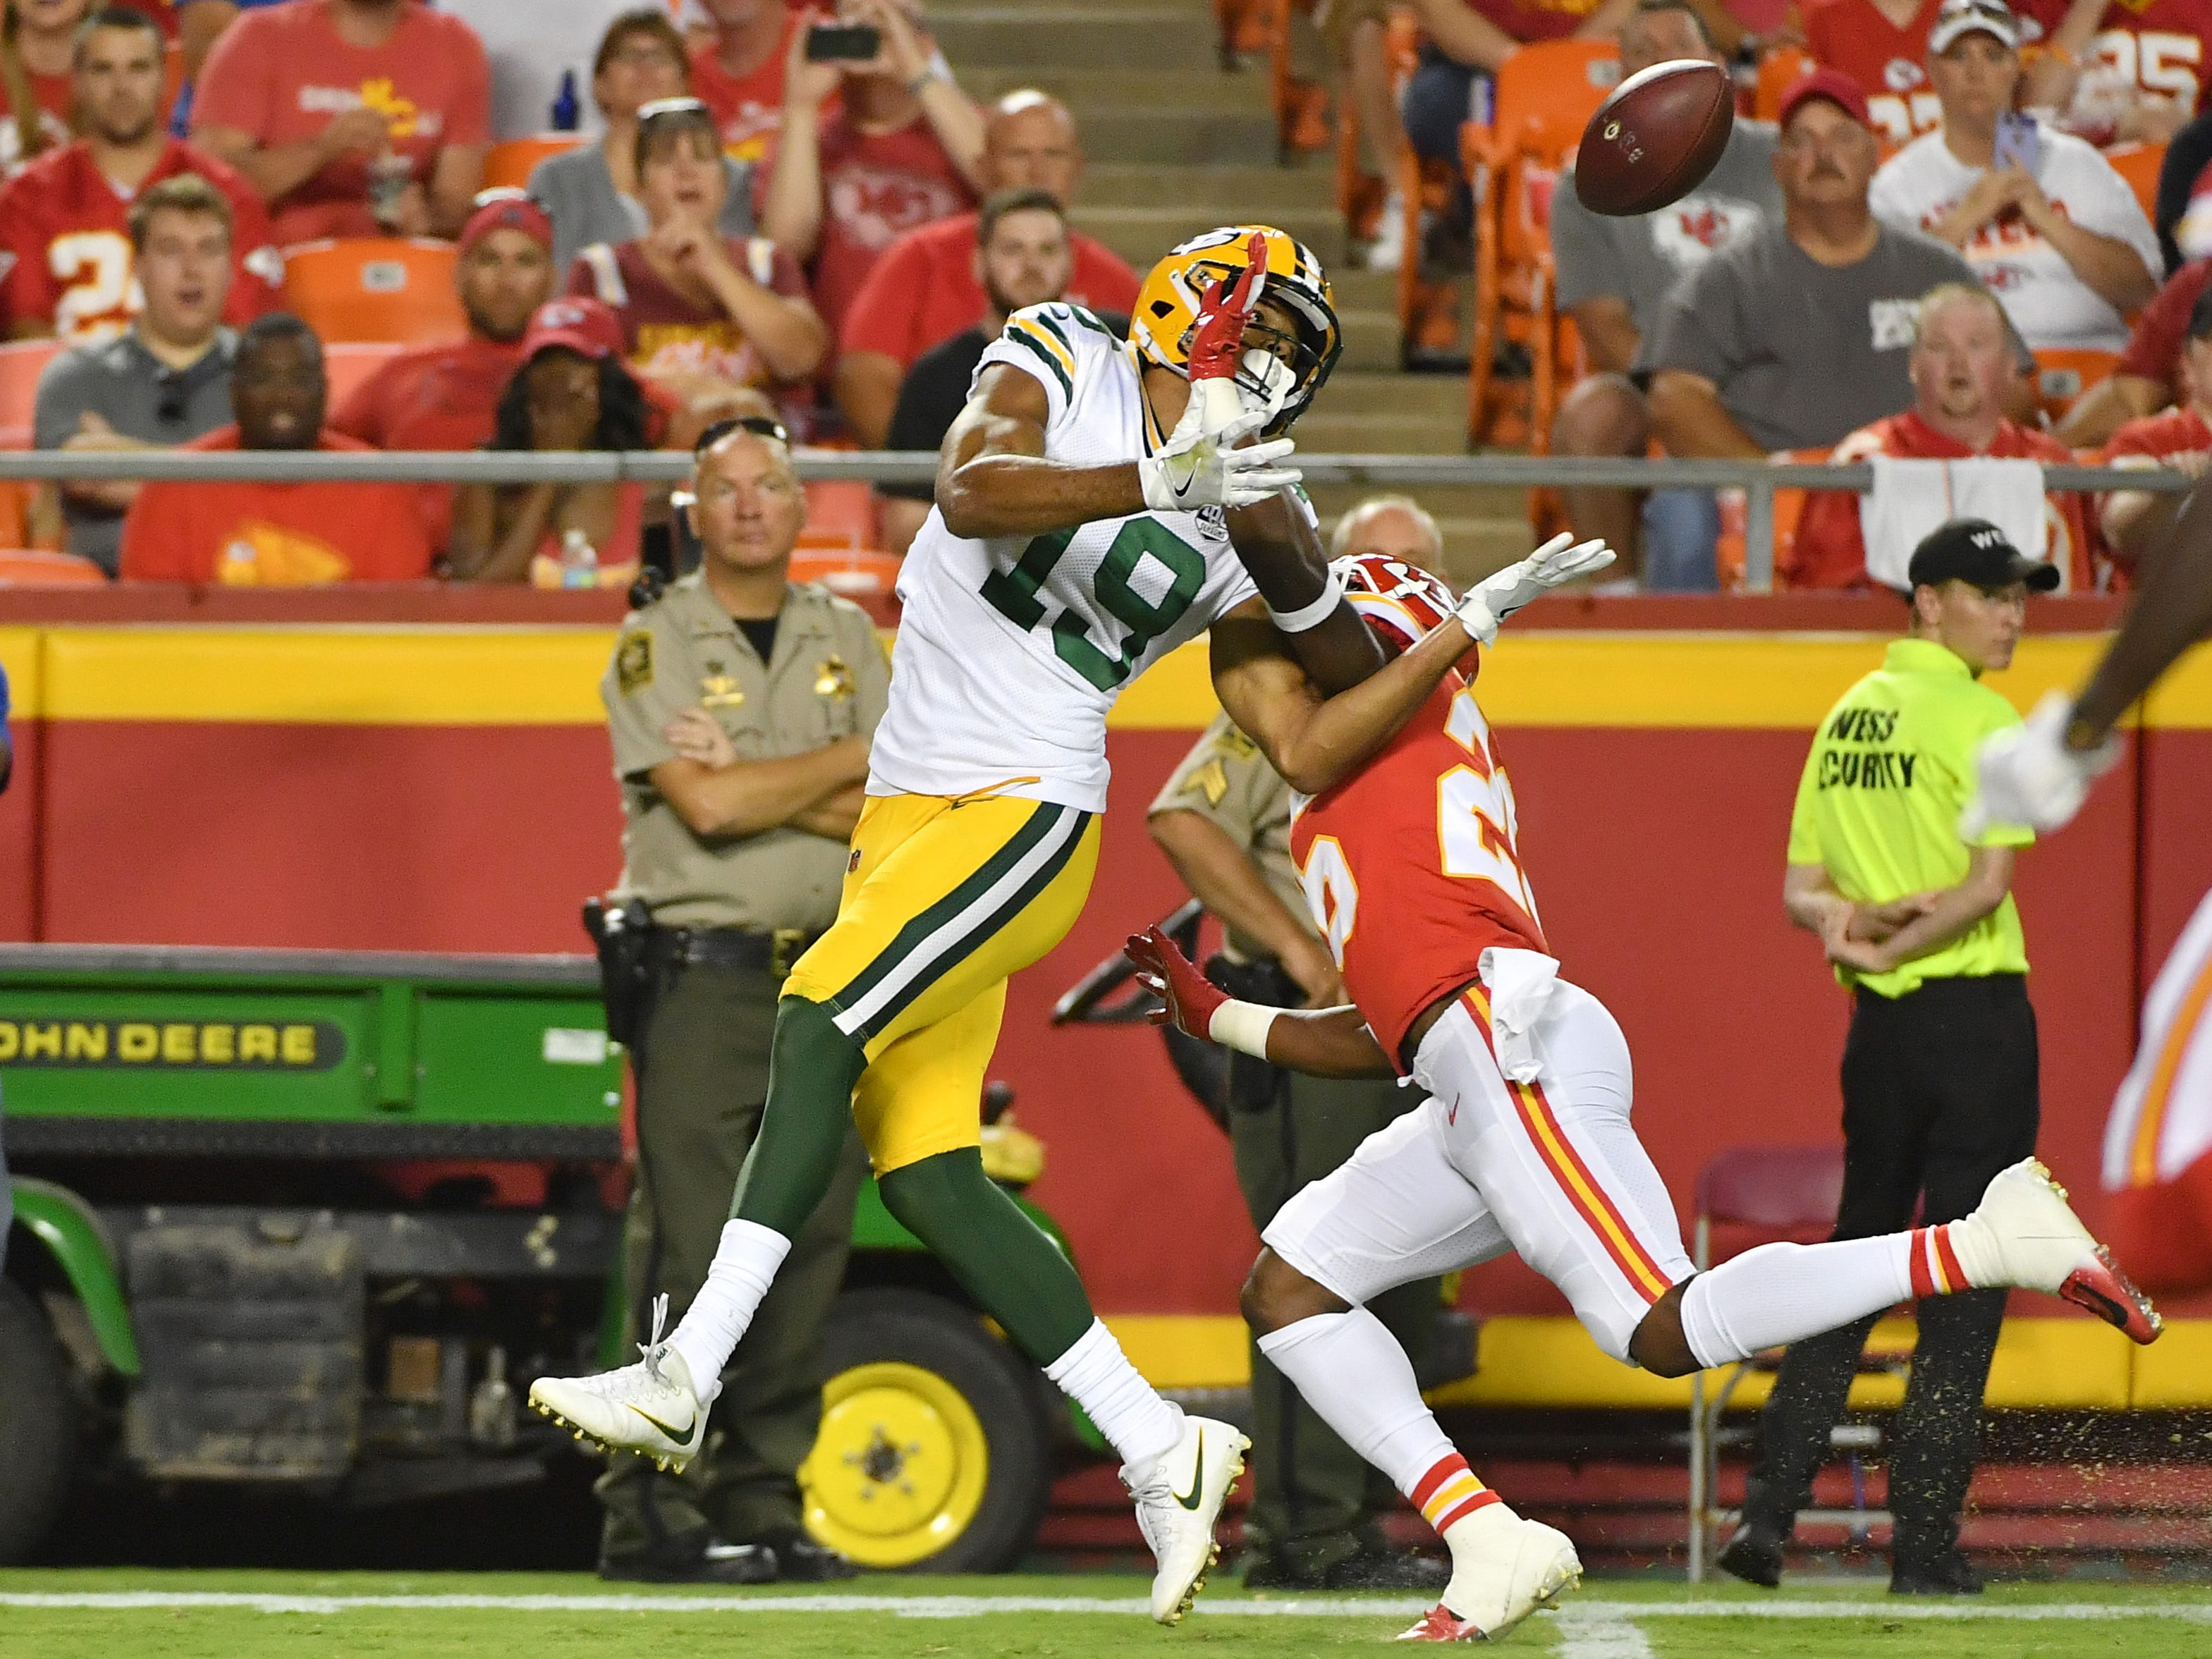 Aug 30, 2018; Kansas City, MO, USA; Kansas City Chiefs cornerback Will Redmond (26) breaks up a pass intended for Green Bay Packers wide receiver Equanimeous St. Brown (19) during the first half at Arrowhead Stadium.